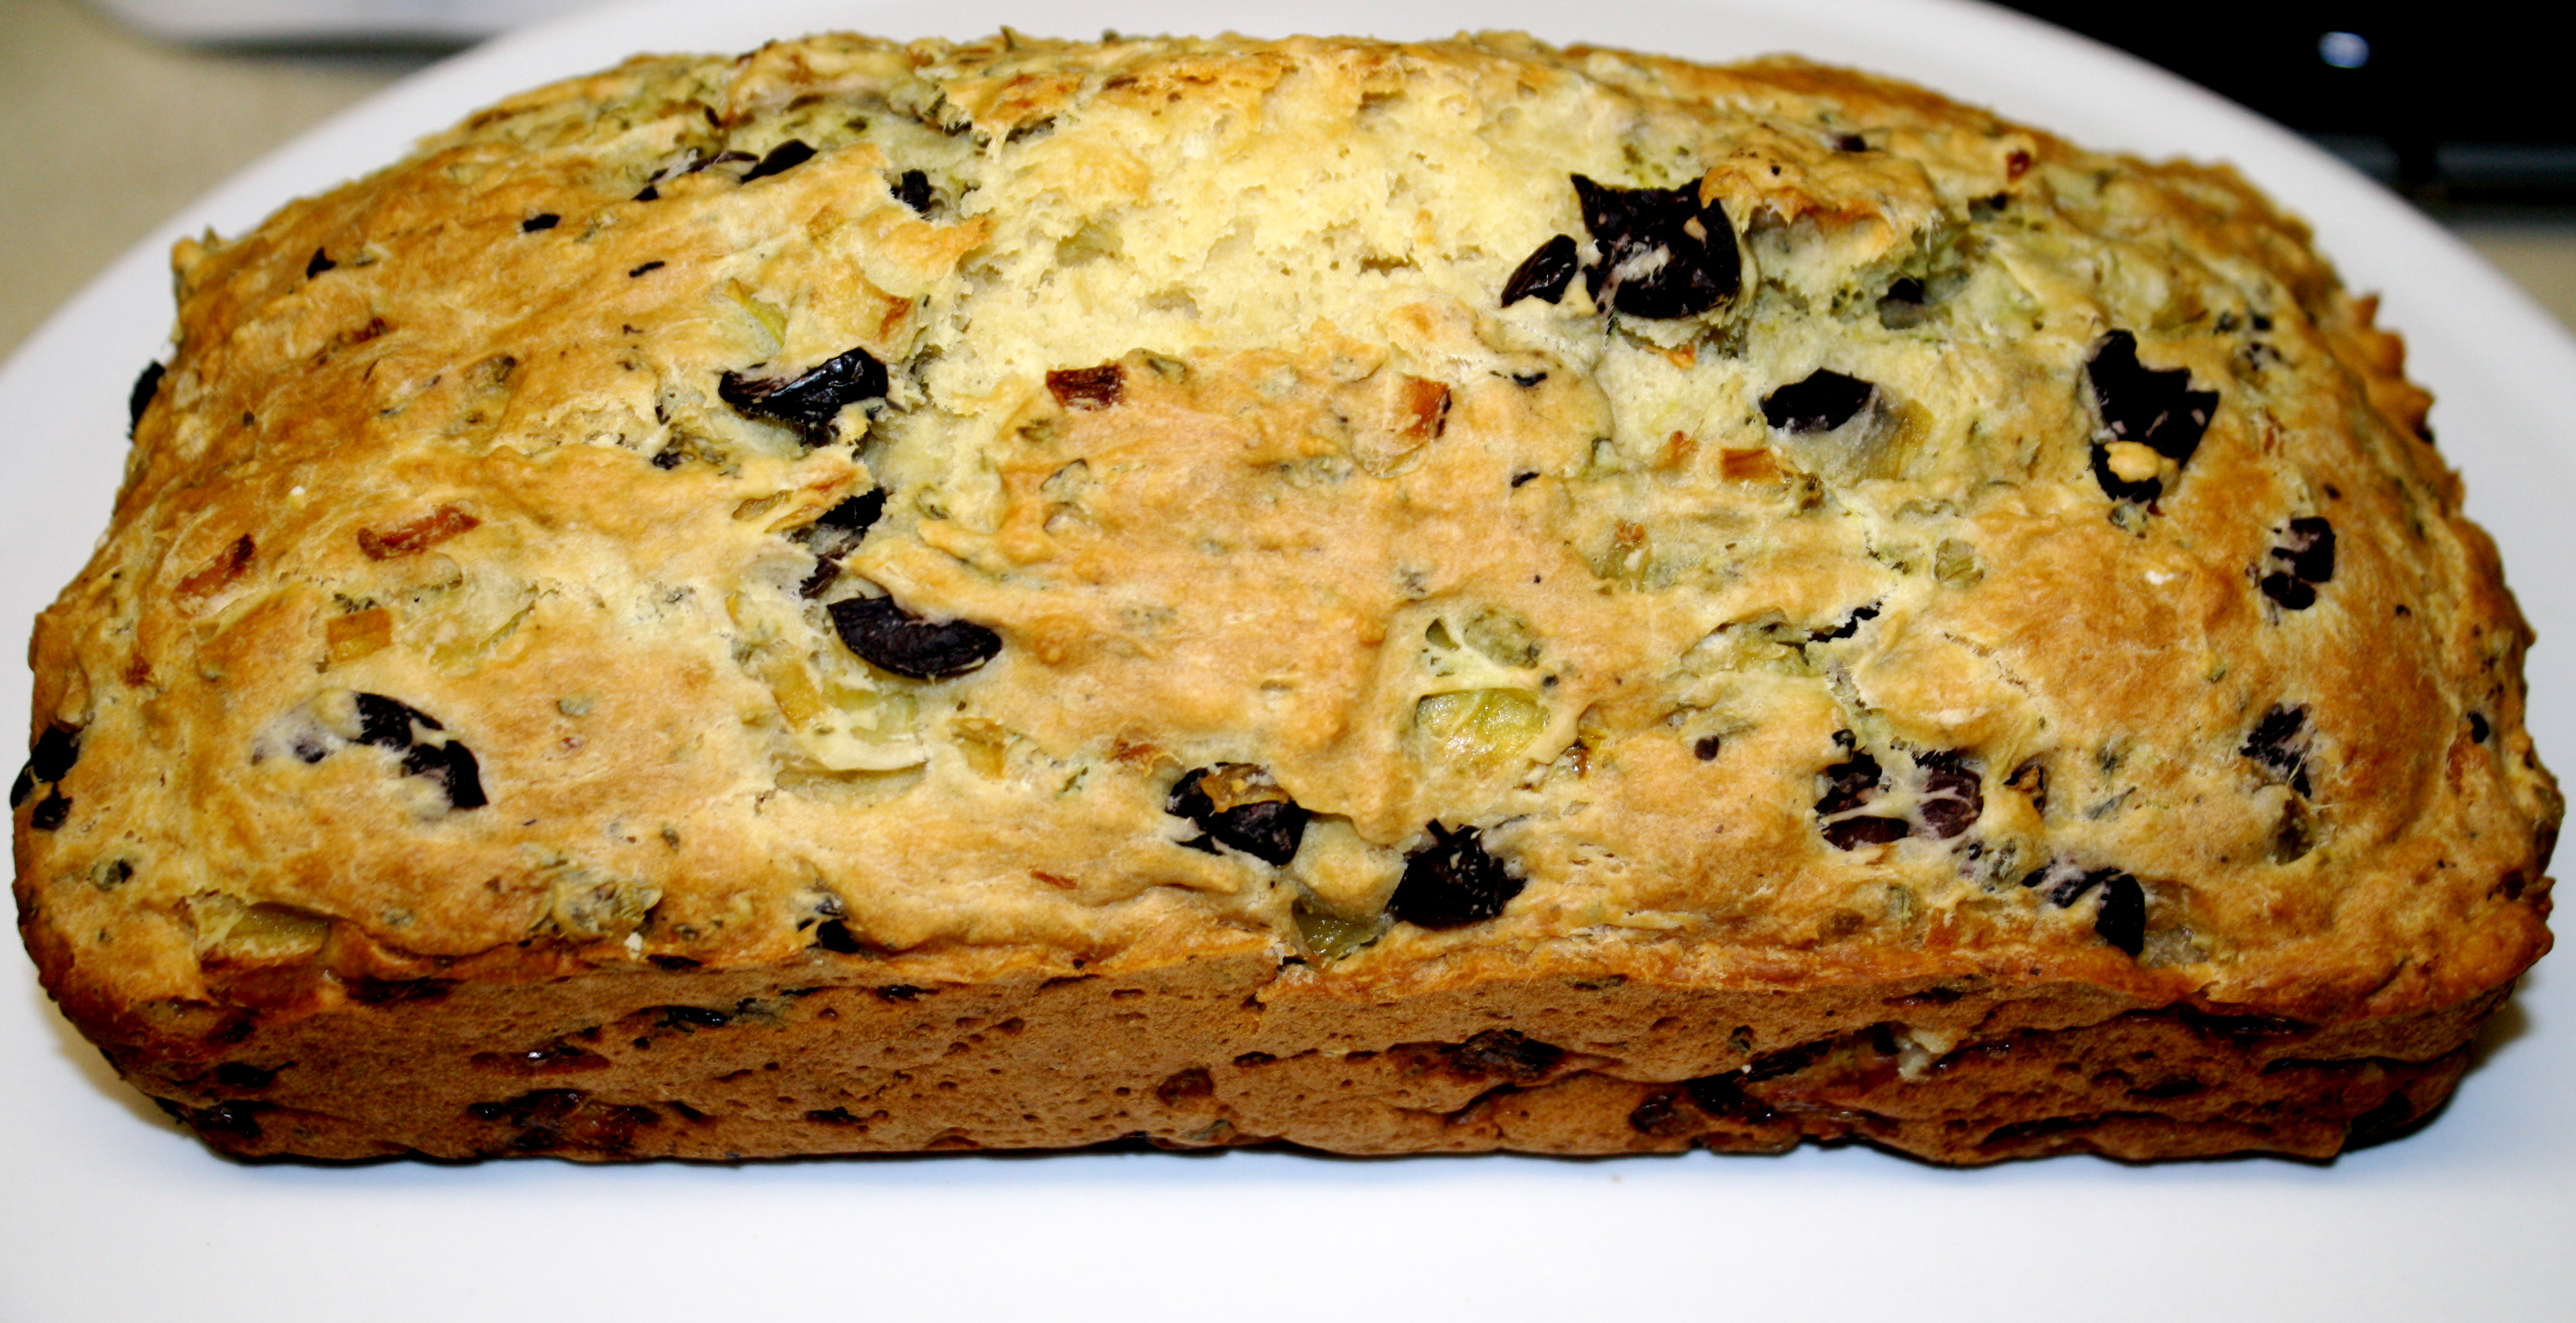 Kalamata Olive Bread with Oregano – The Quotable Kitchen